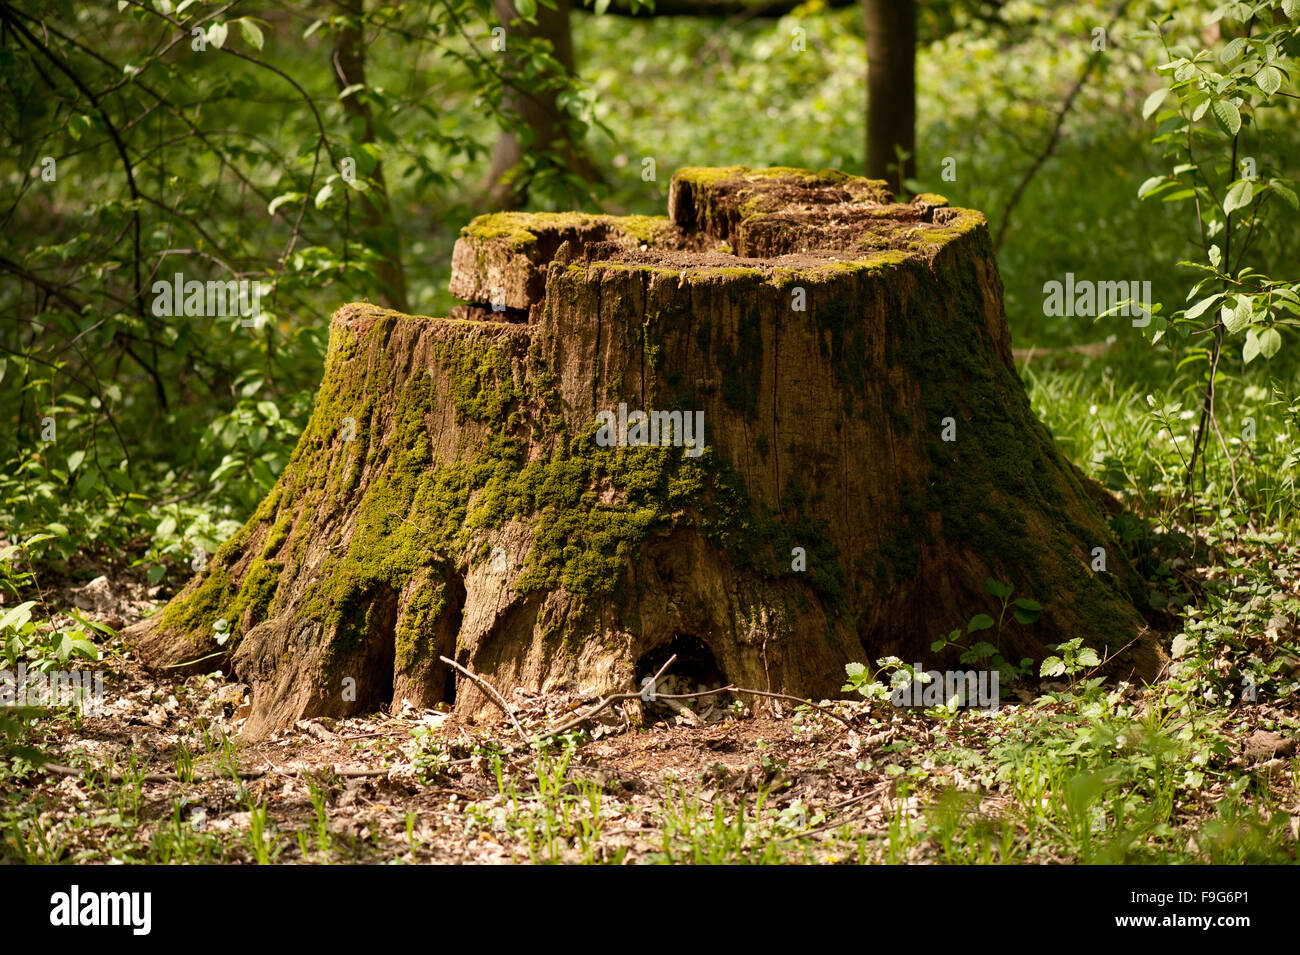 Tree Stump High Resolution Stock Photography and Images - Alamy